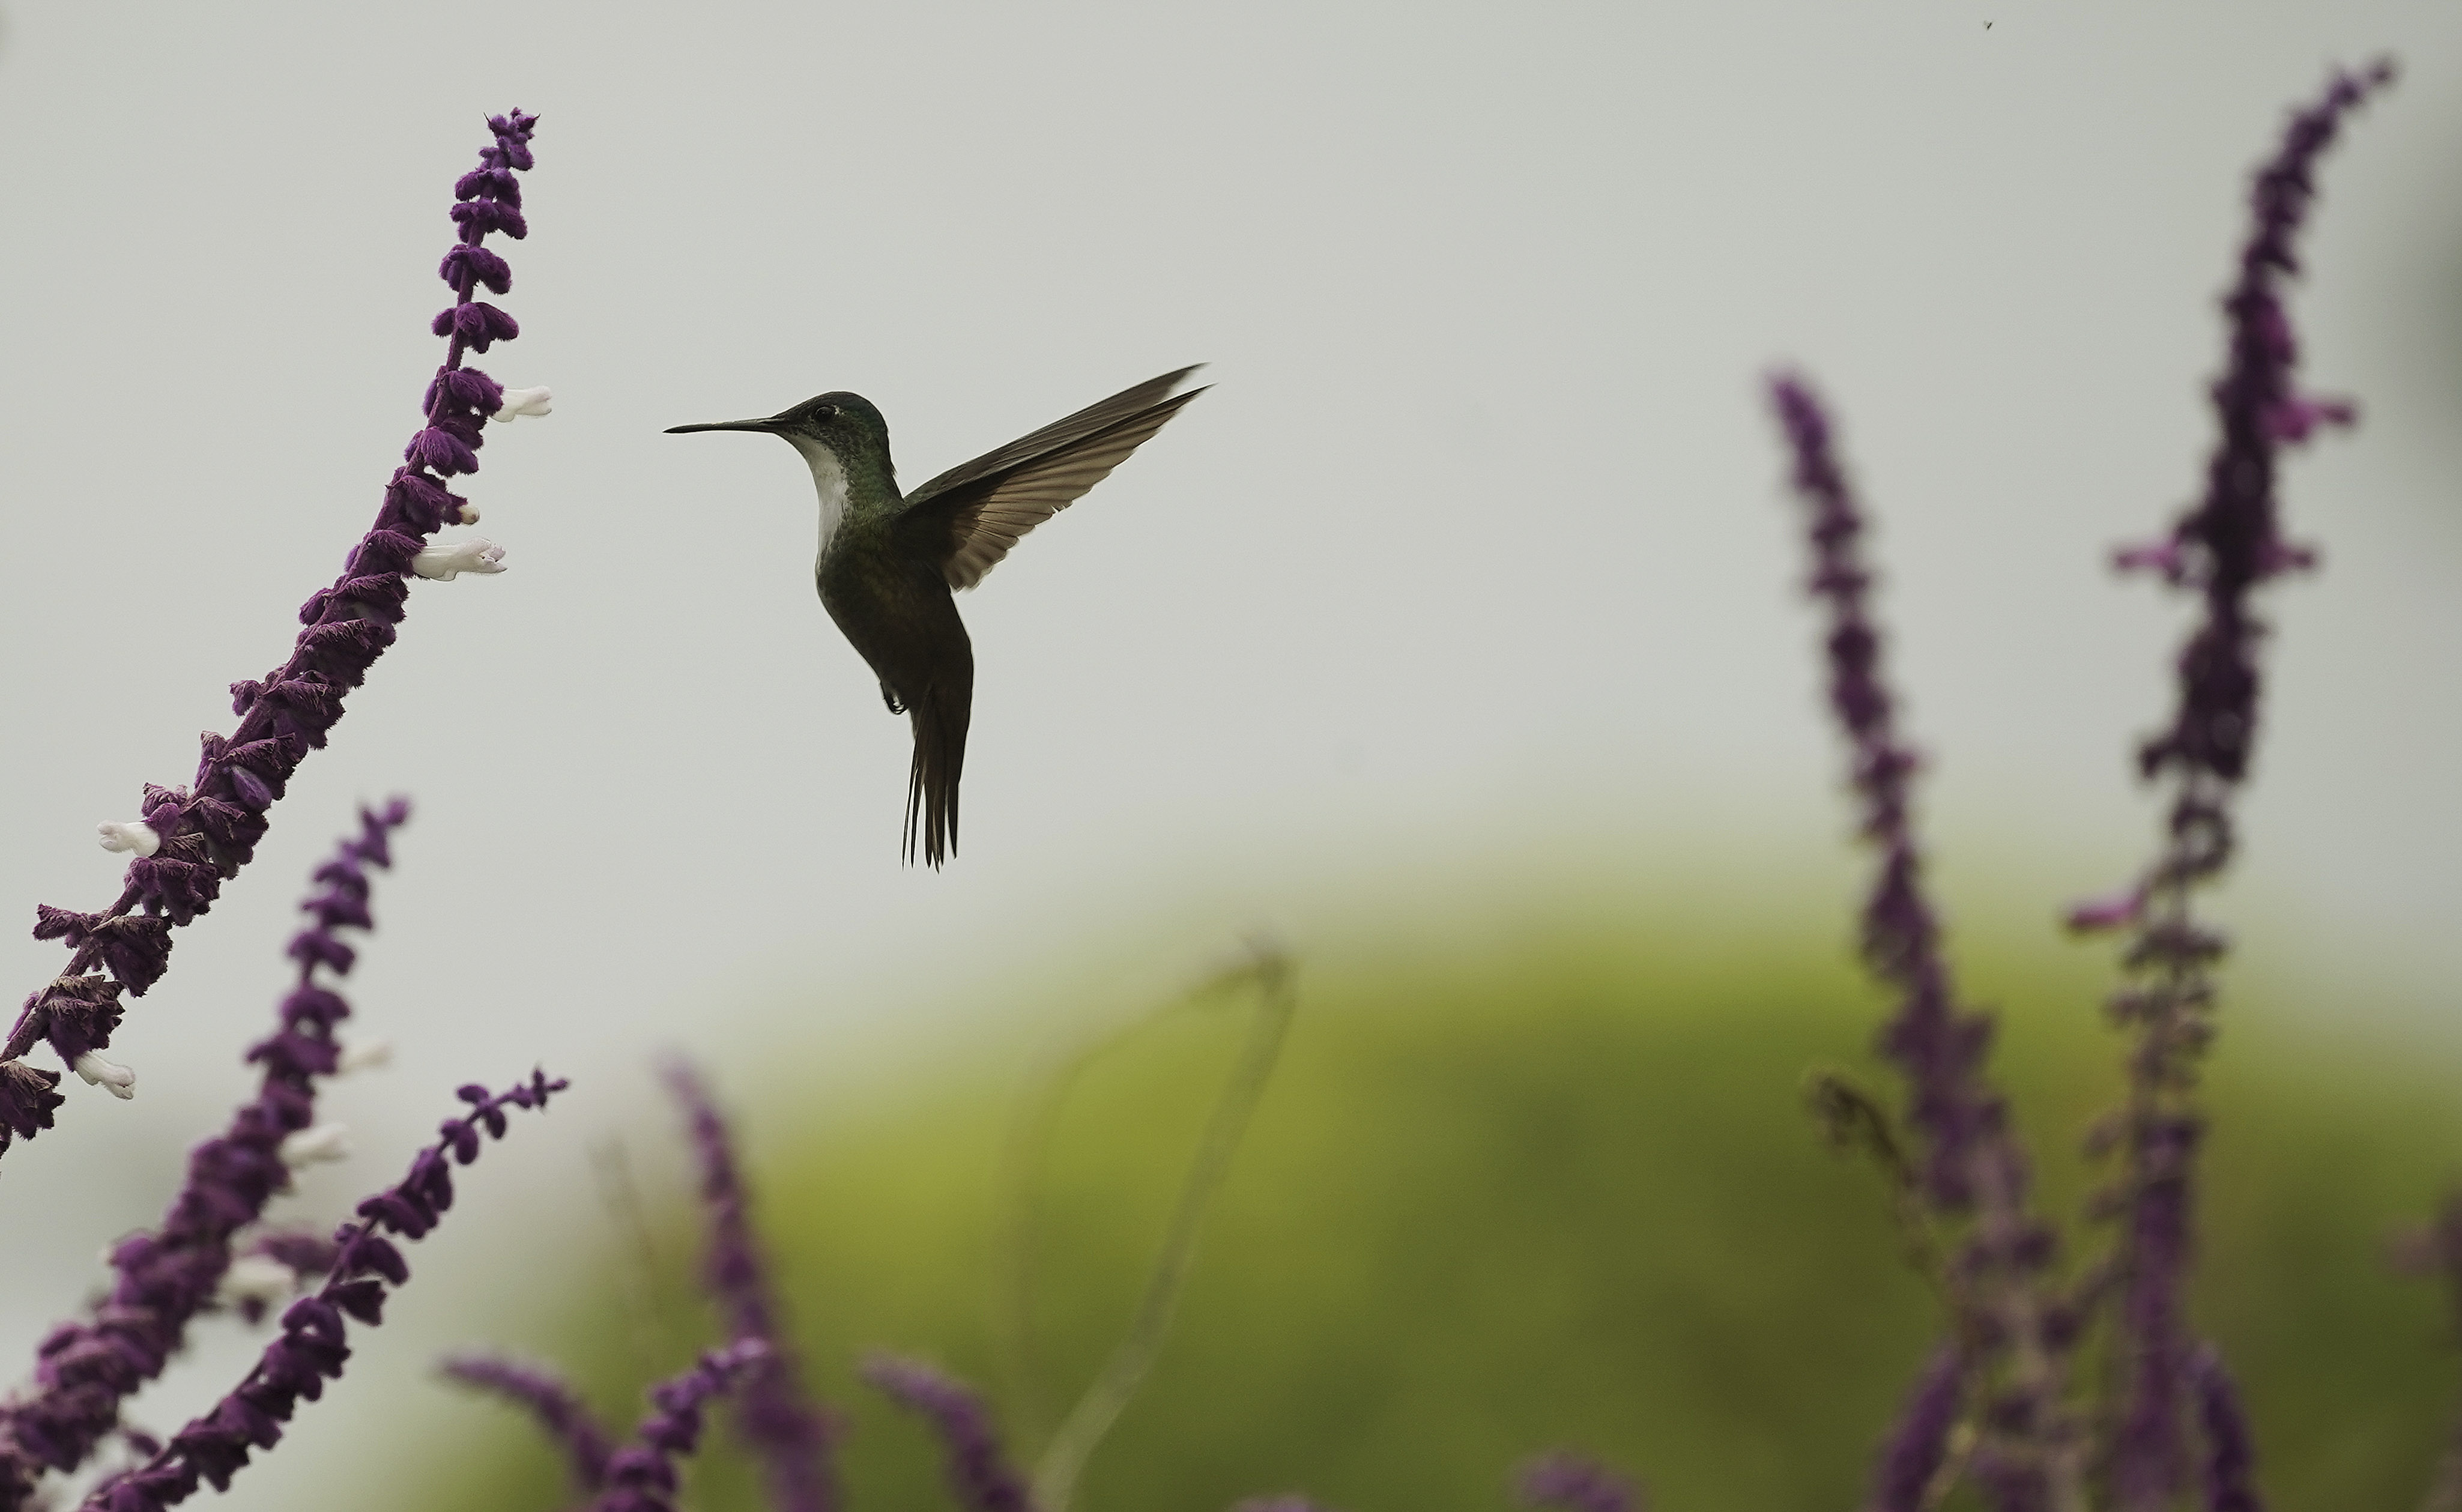 A hummingbird flies near Lake Atitlan, Guatemala, on Monday, Aug. 19, 2019. President Russell M. Nelson of The Church of Jesus Christ of Latter-day Saints spoke in a devotional on Saturday, Aug. 24, in Guatemala City.